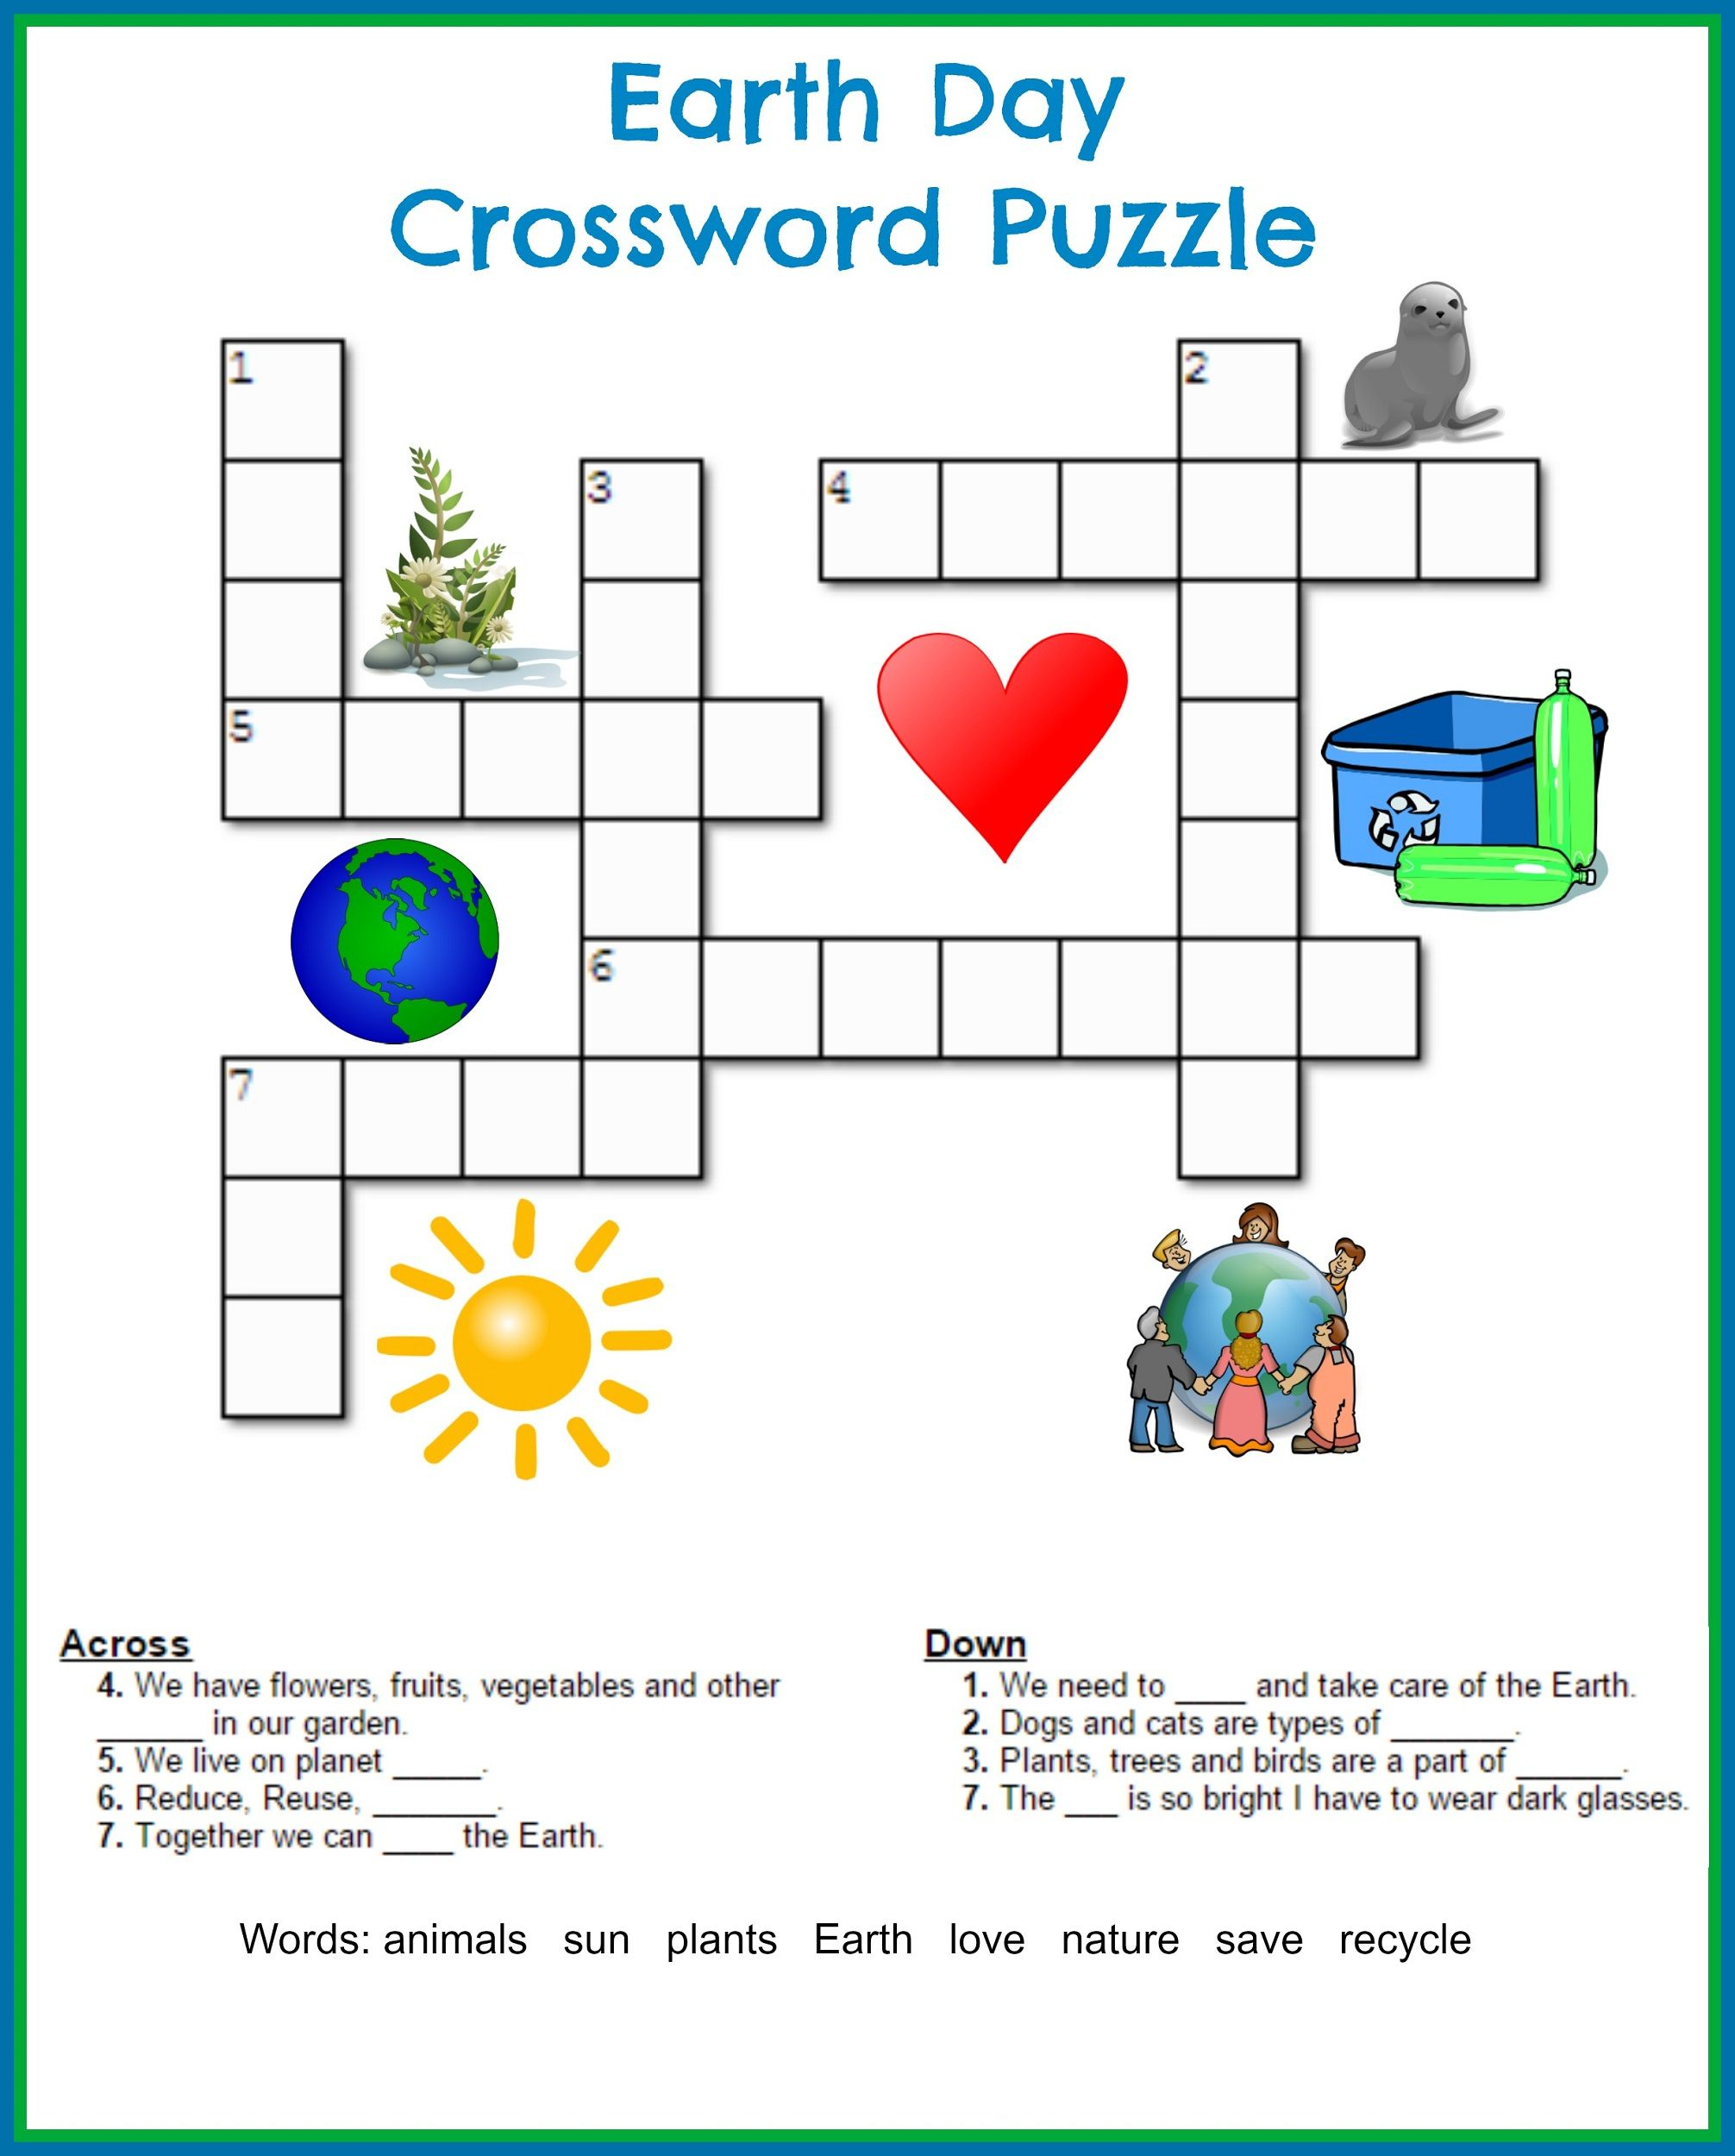 Printable Crossword Puzzles Kids | Crossword Puzzles On Earth - Printable Puzzles For Kids